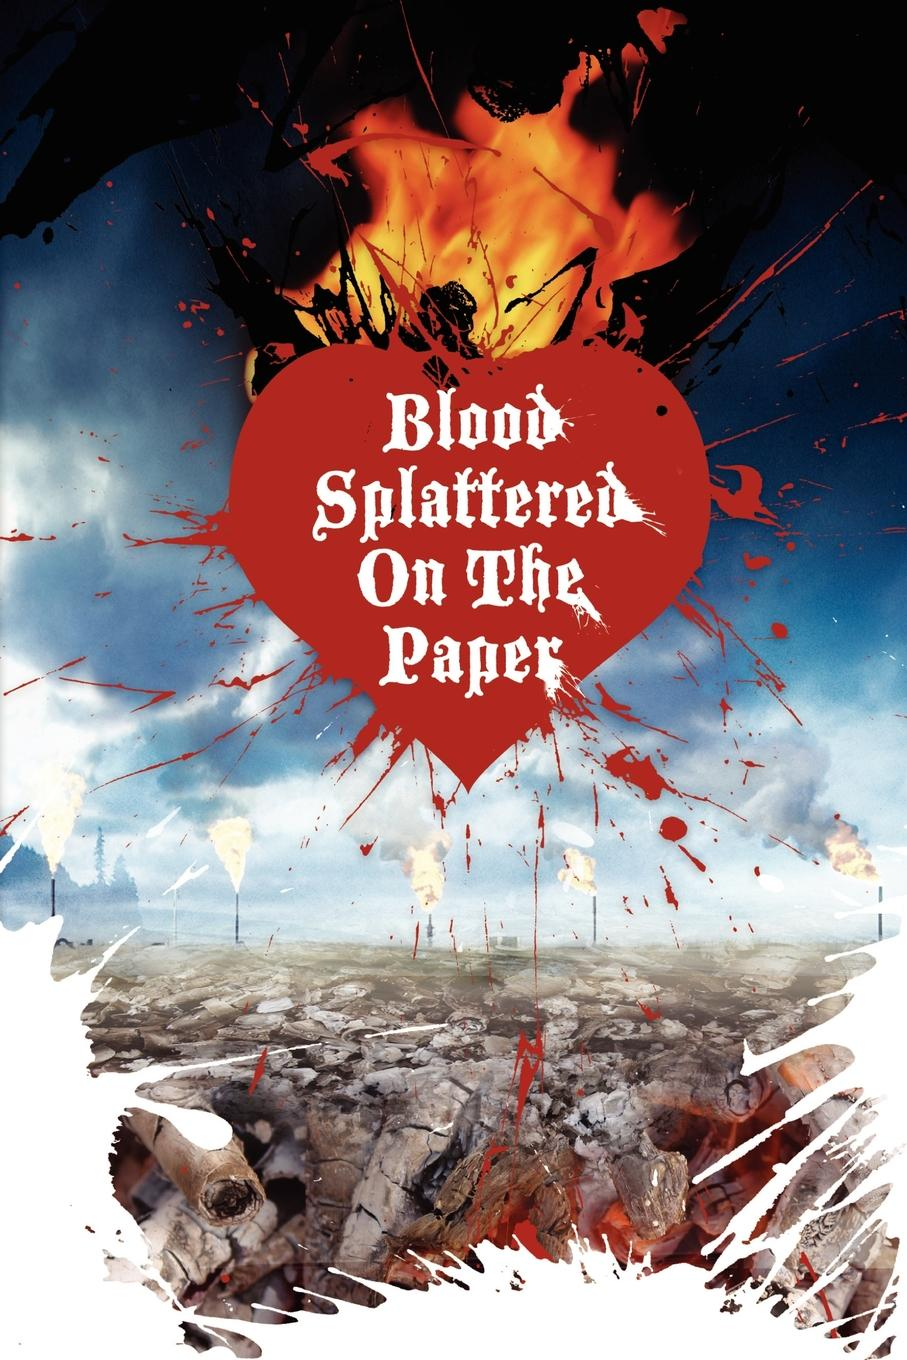 Blood Splattered on the Paper Author, Violet Monday, gives birth to, Blood Splattered on the Paper...